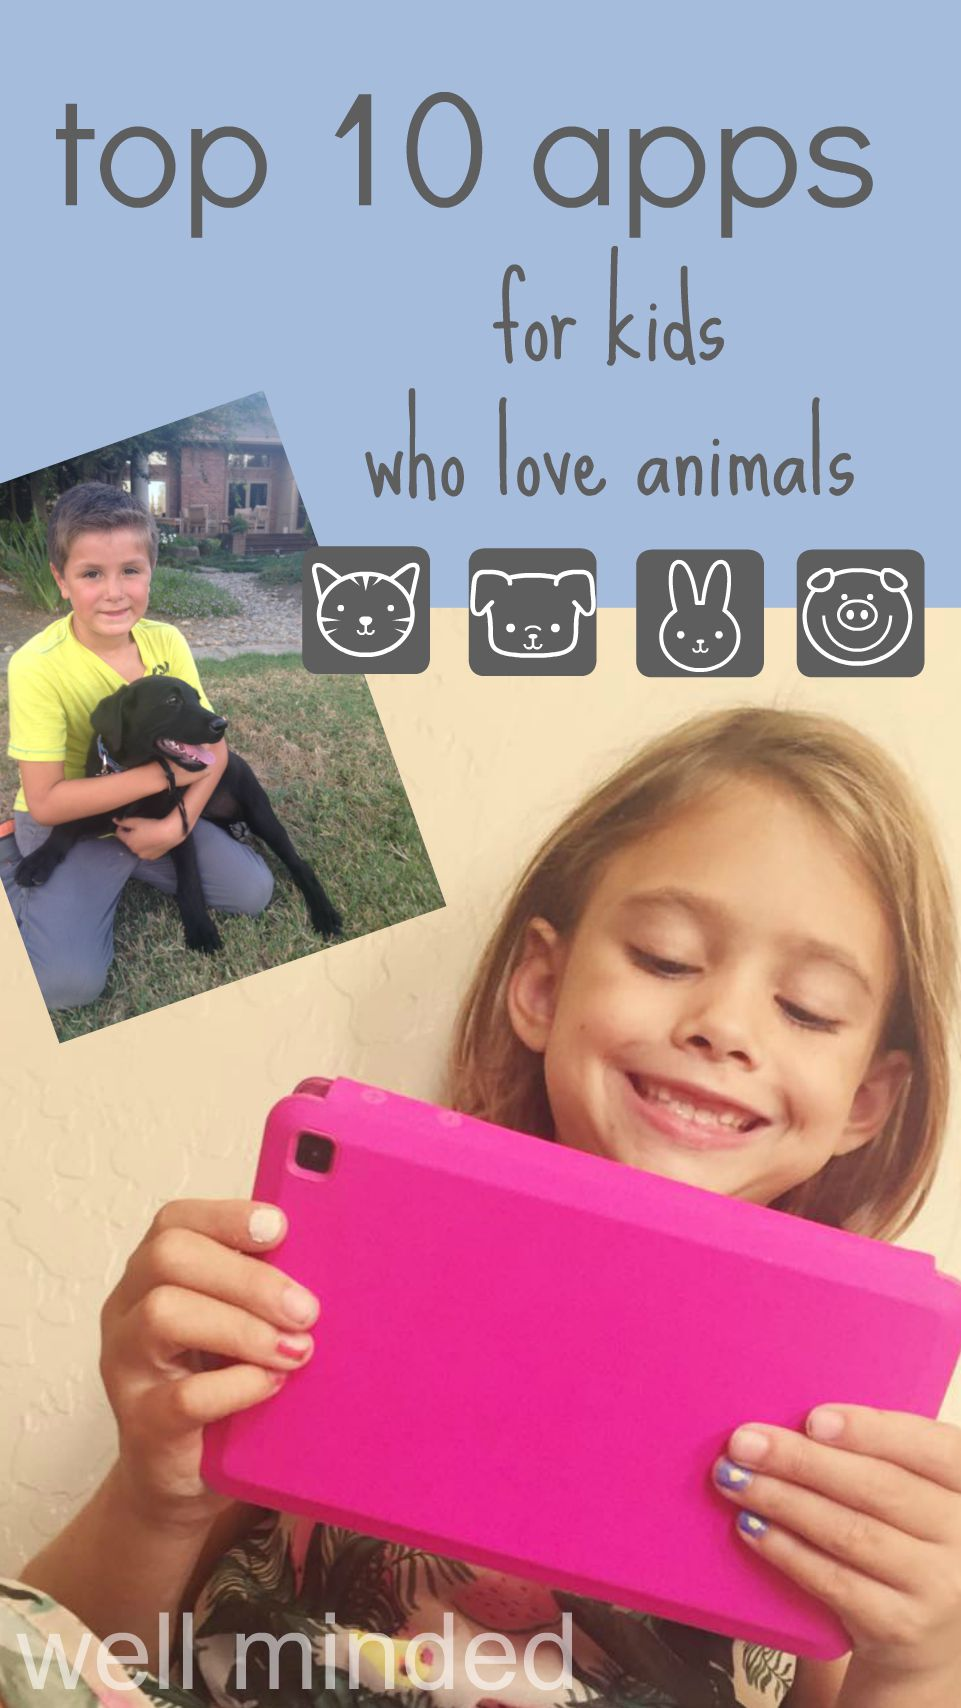 top 10 apps for kids who love animals